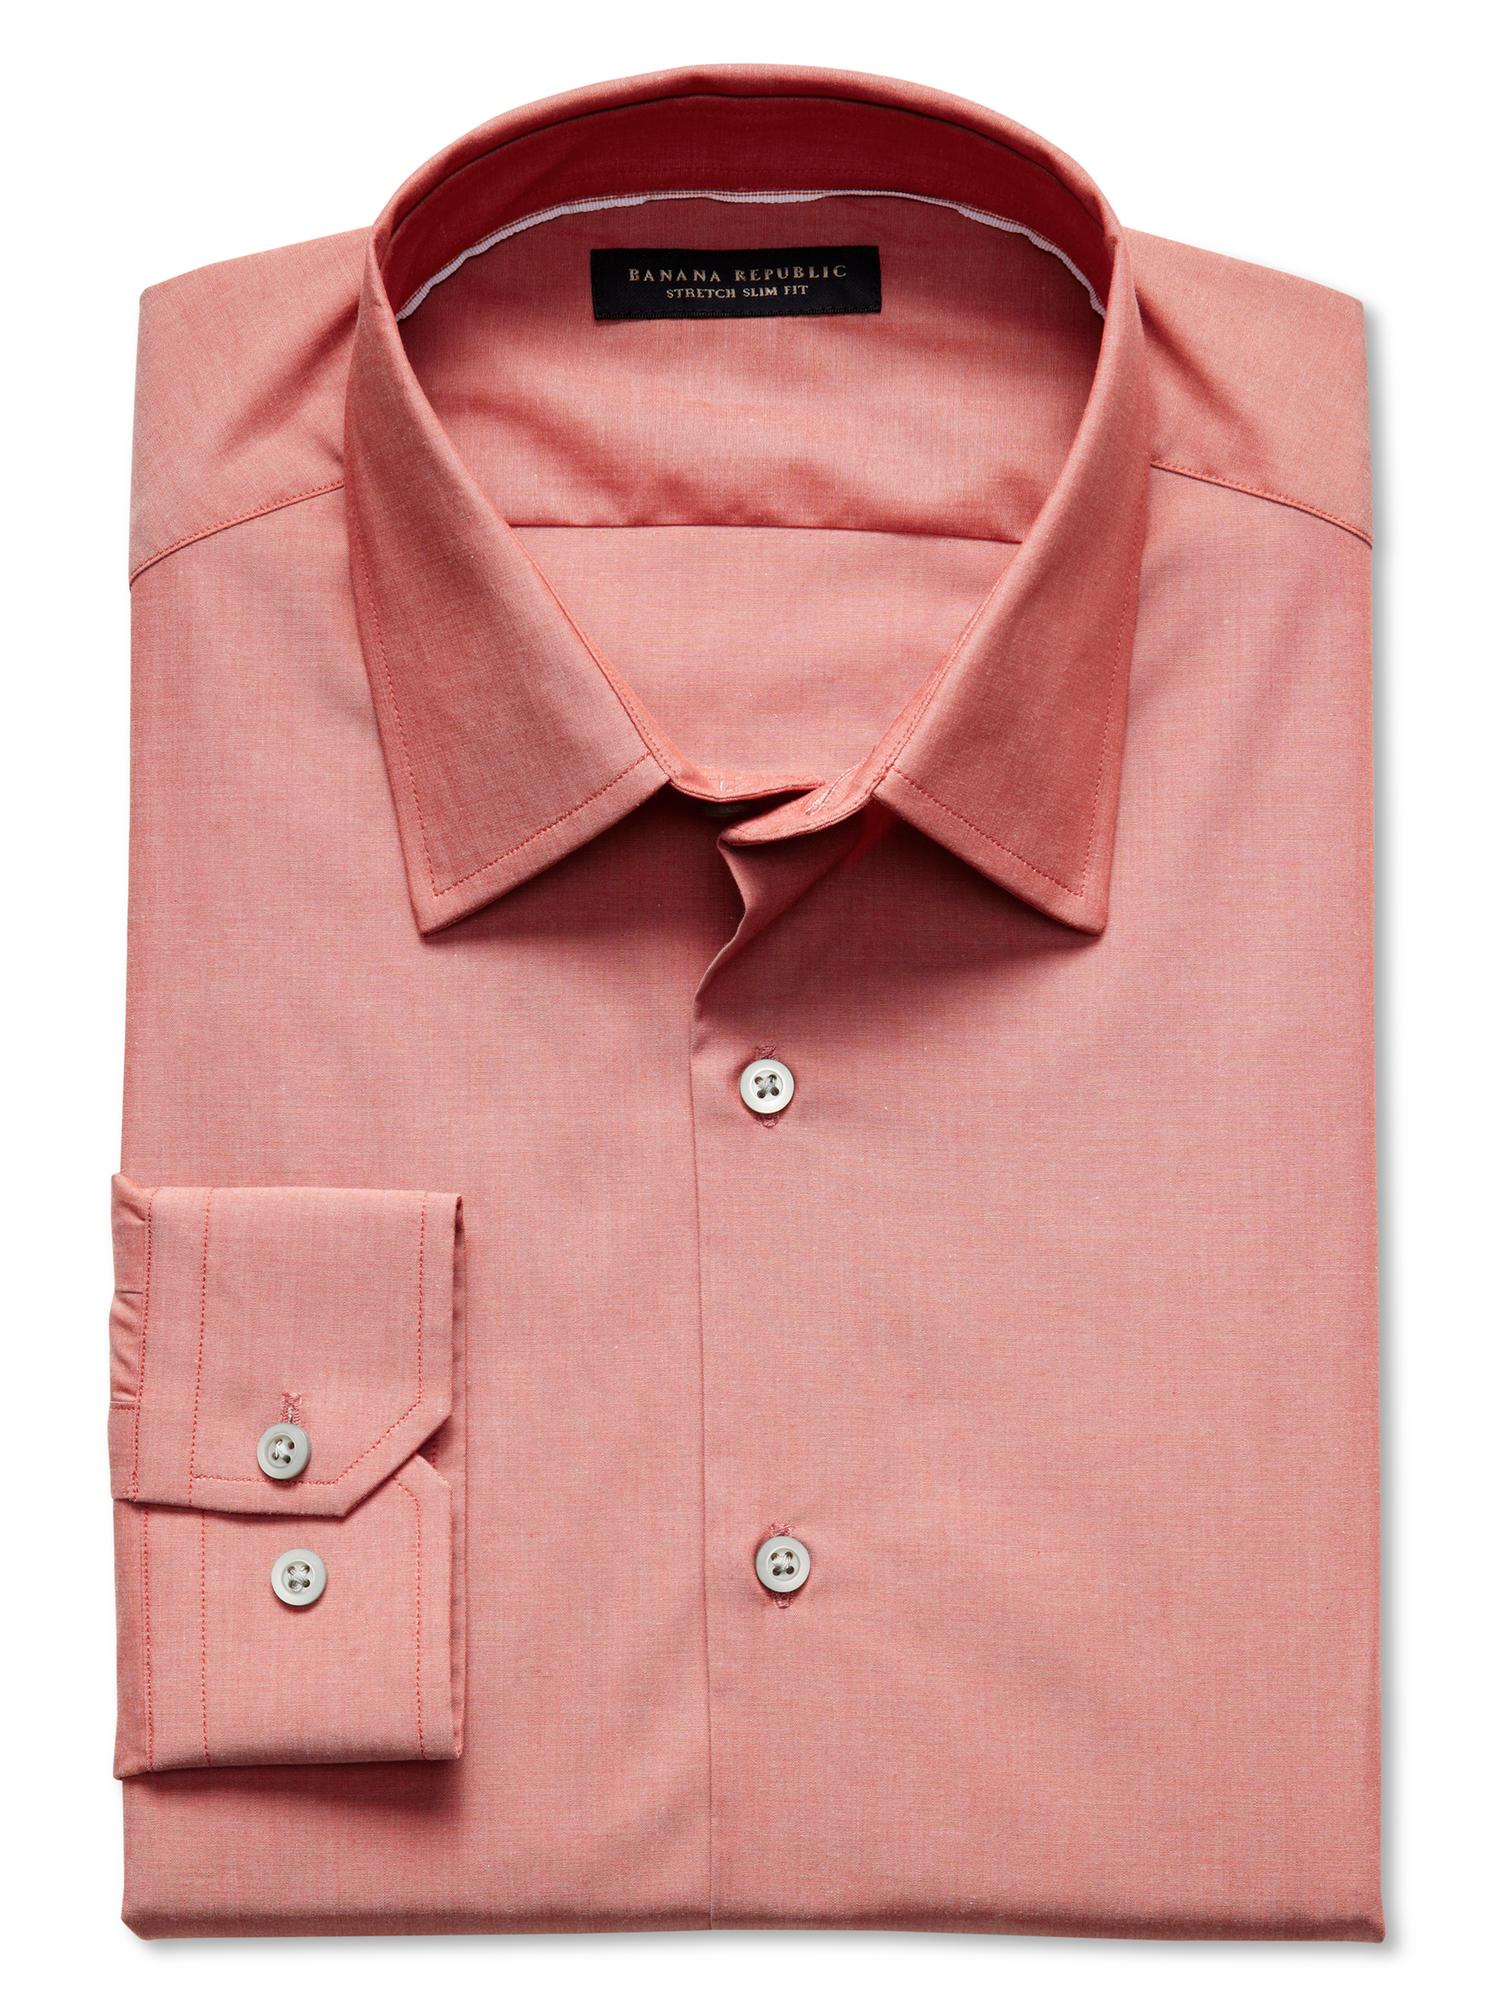 Banana republic slim fit stretch dress shirt in pink for for How to stretch a dress shirt